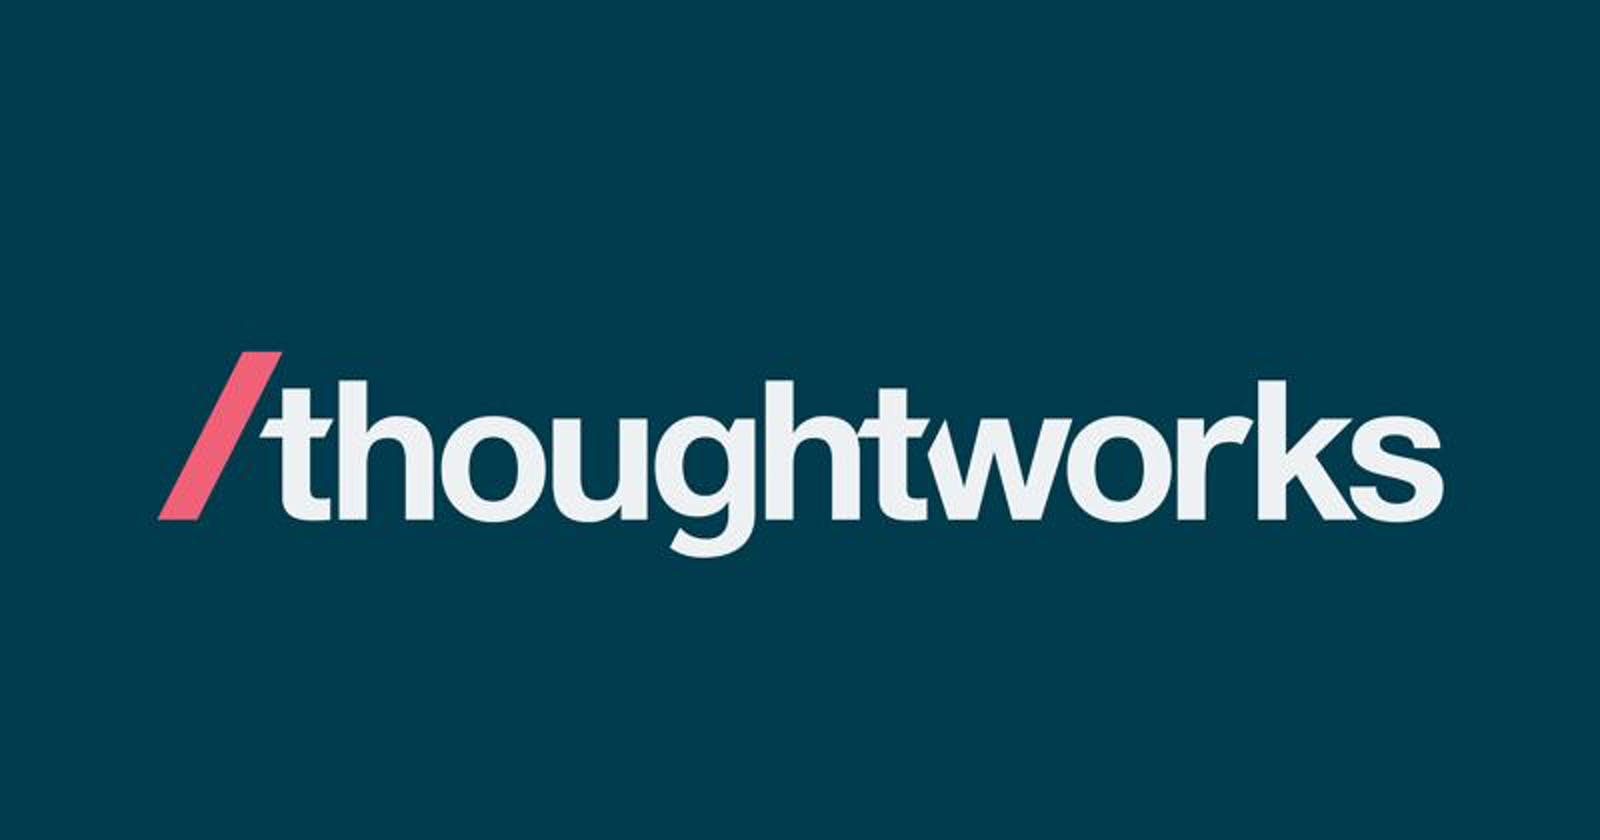 Why i would recommend Thoughtworks for others?